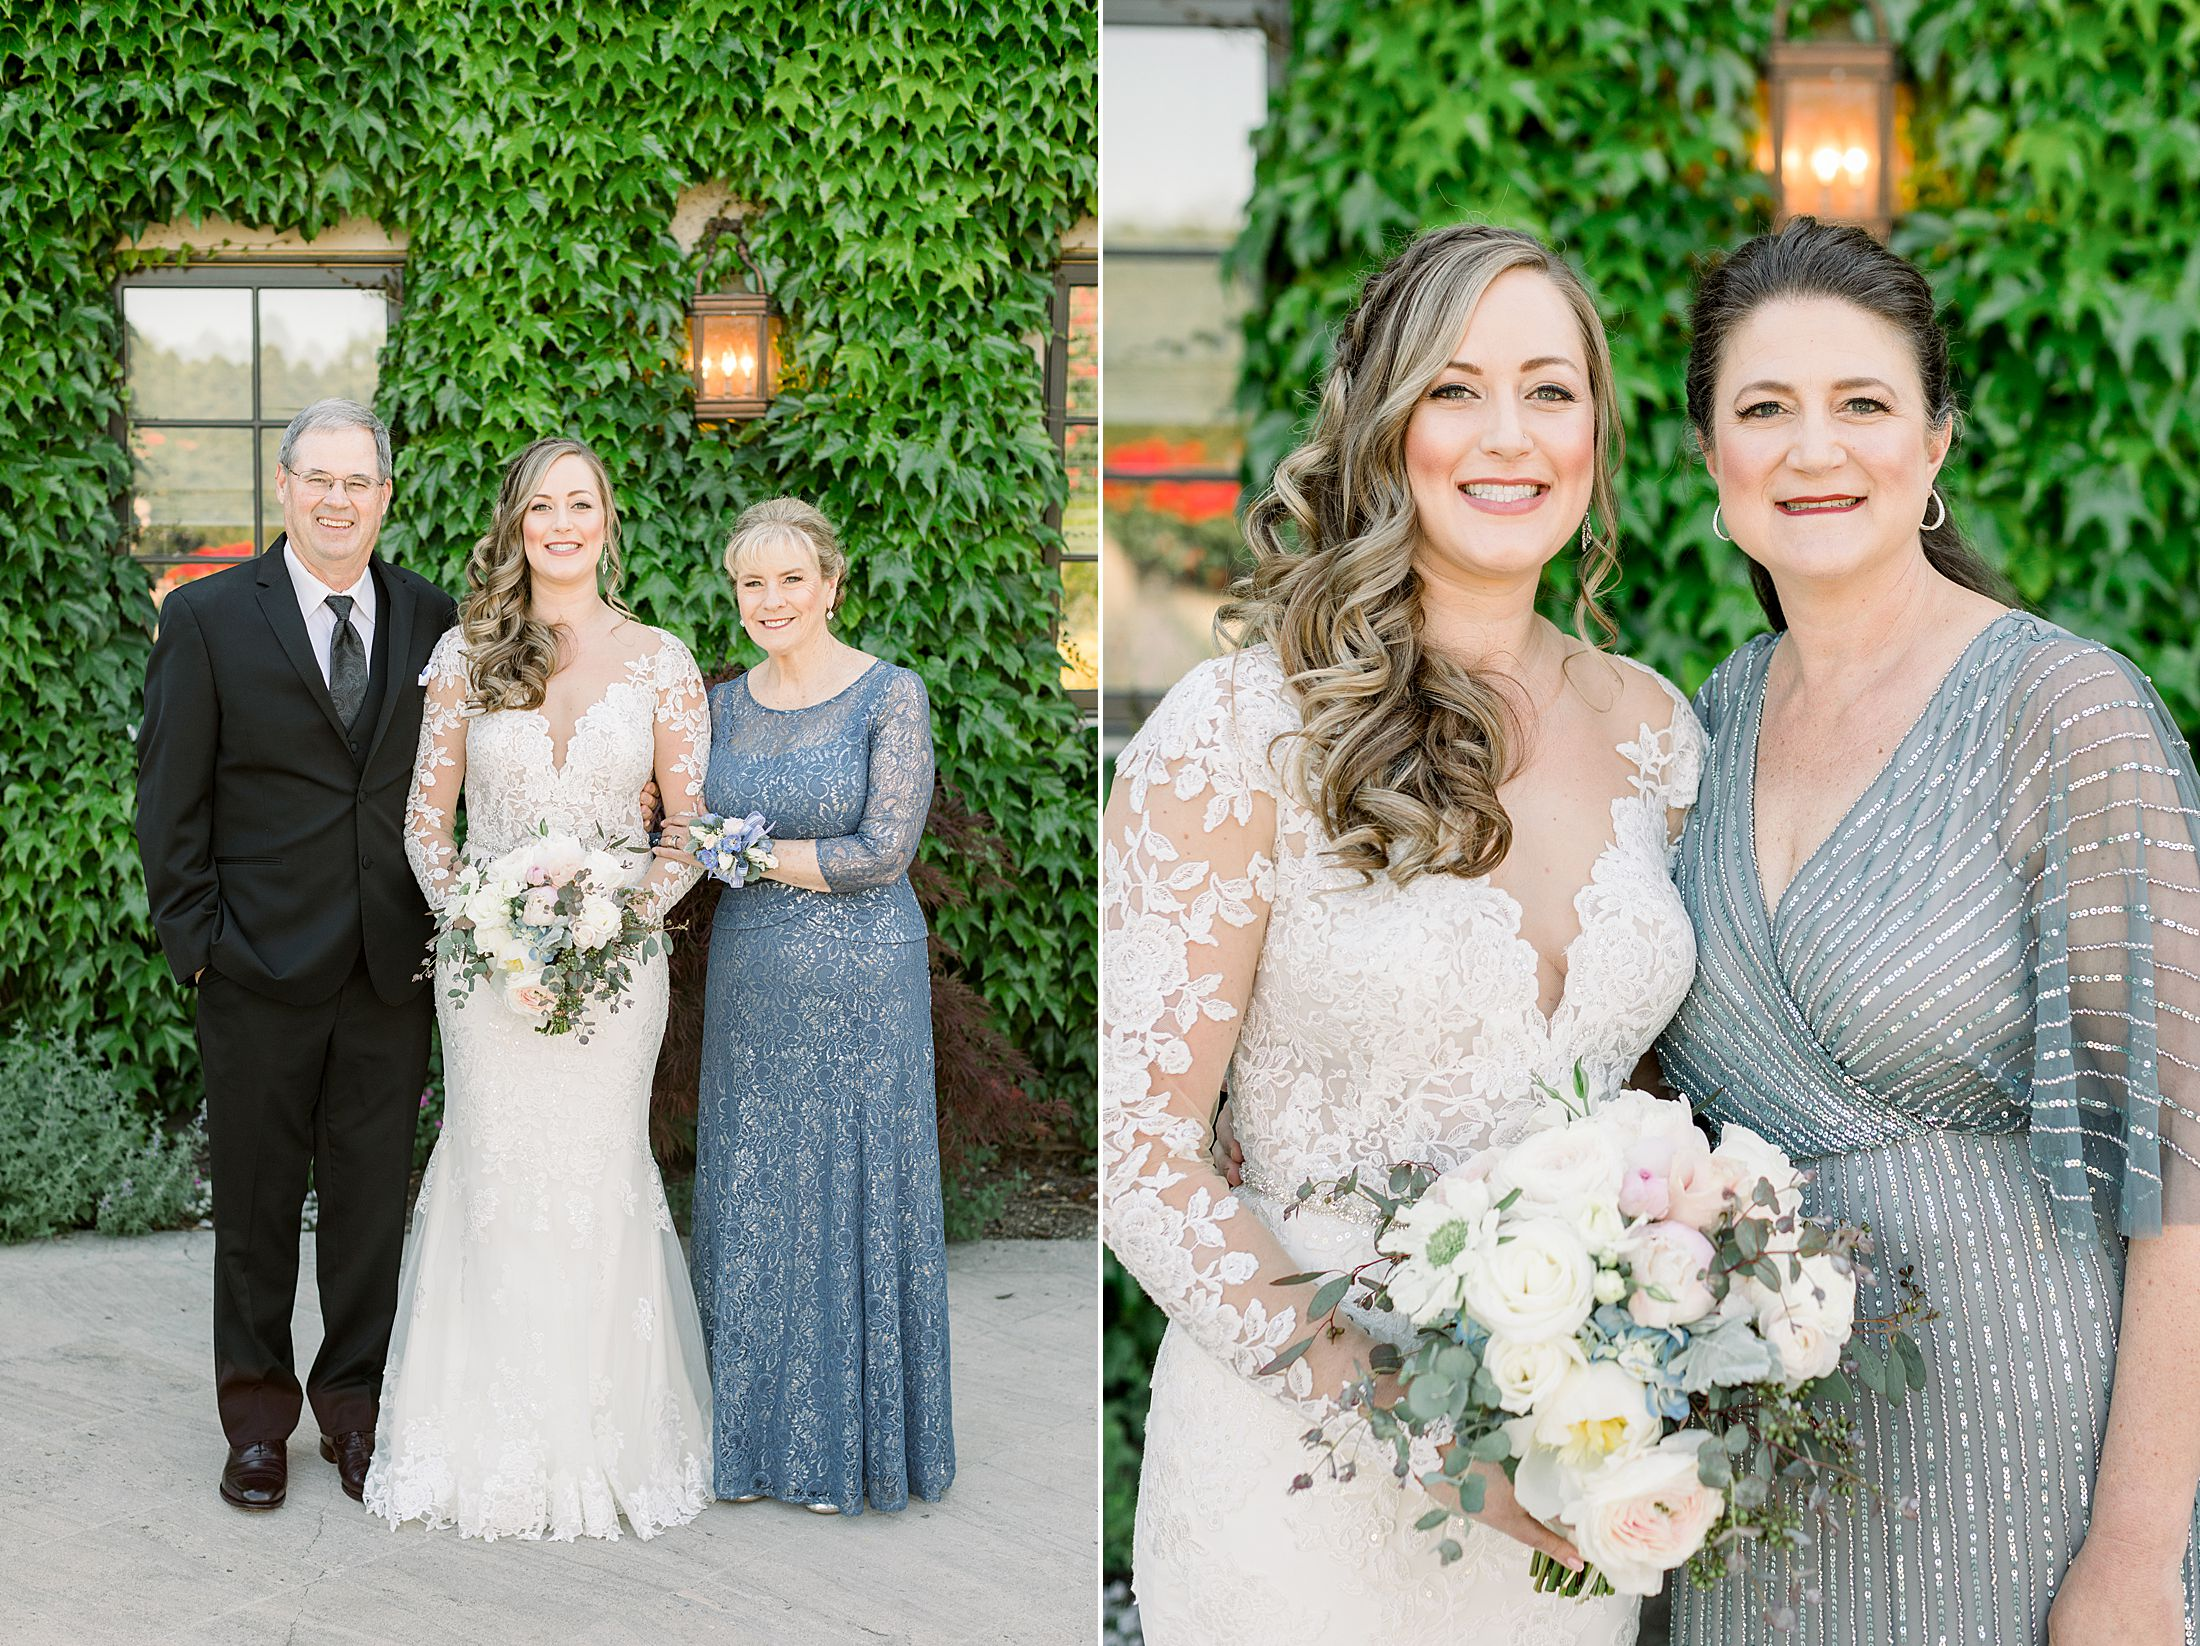 Clos LaChance Winery Wedding - Ashley Baumgartner - Kat & Kurt - Morgan Hill Wedding - Winery Wedding - Bay Area Photographer - Sacramento Wedding Photographer_0049.jpg